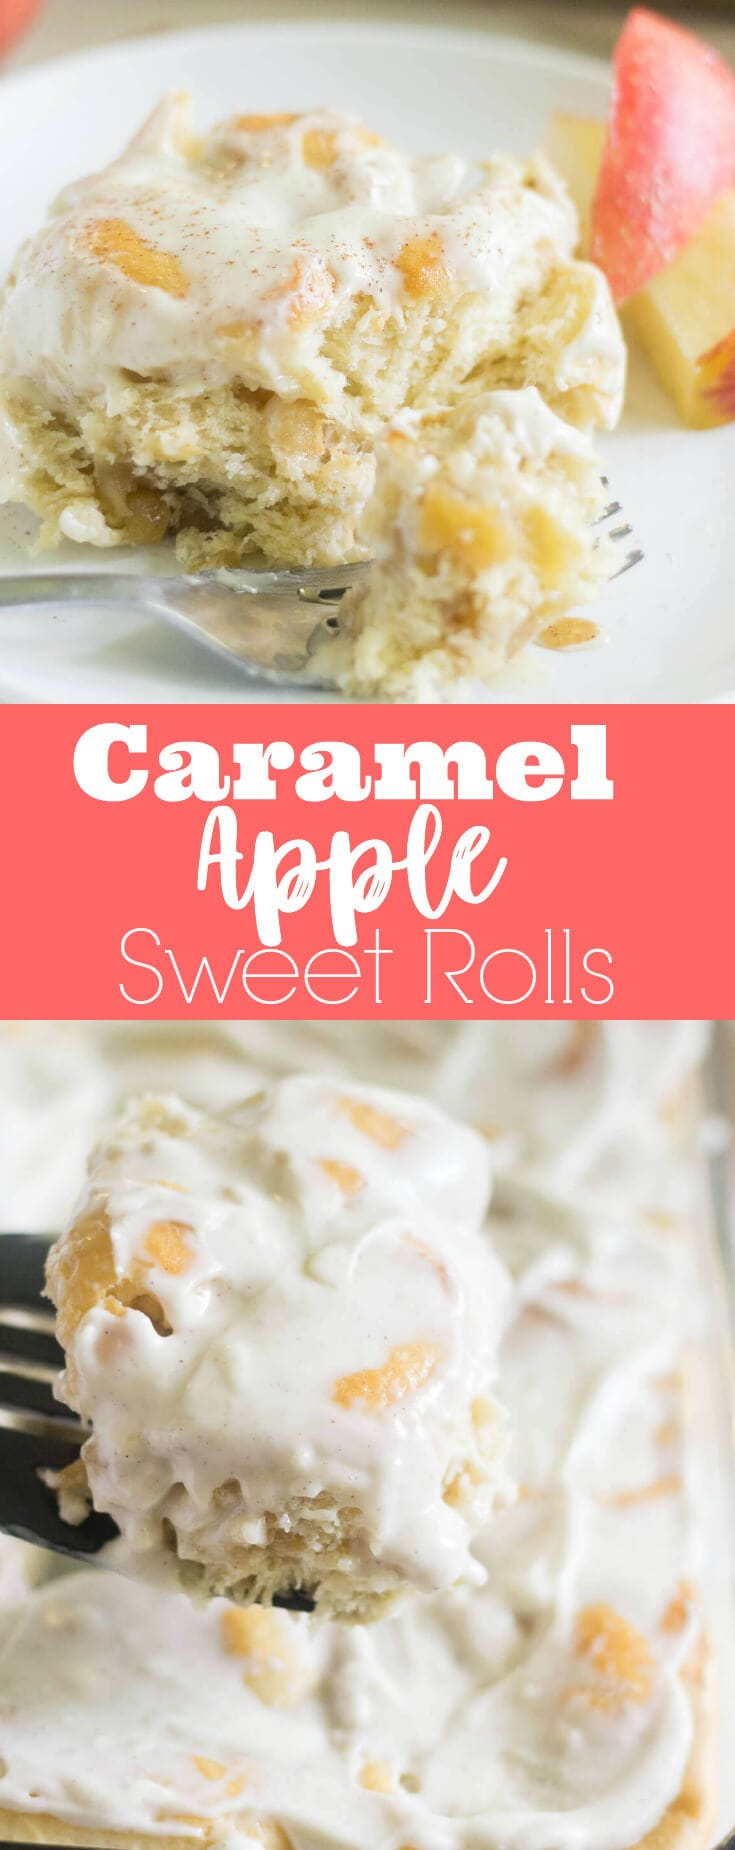 A sweet roll recipe you can't live without! Filled with caramel, apples and cinnamon, these caramel apple sweet rolls are made for fall mornings!